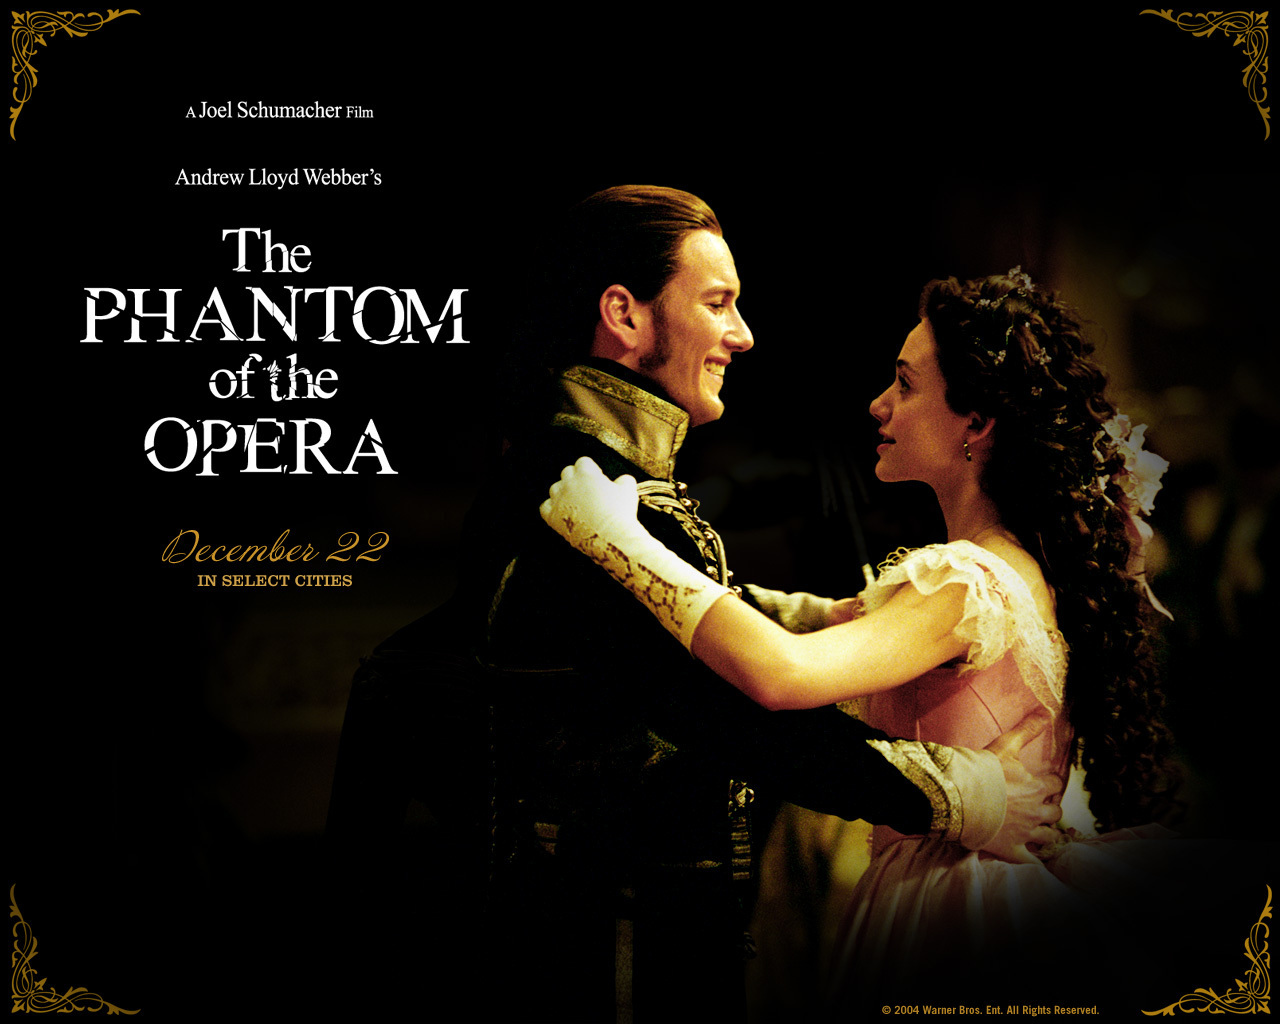 Phantom of the opera | Euro Palace Casino Blog